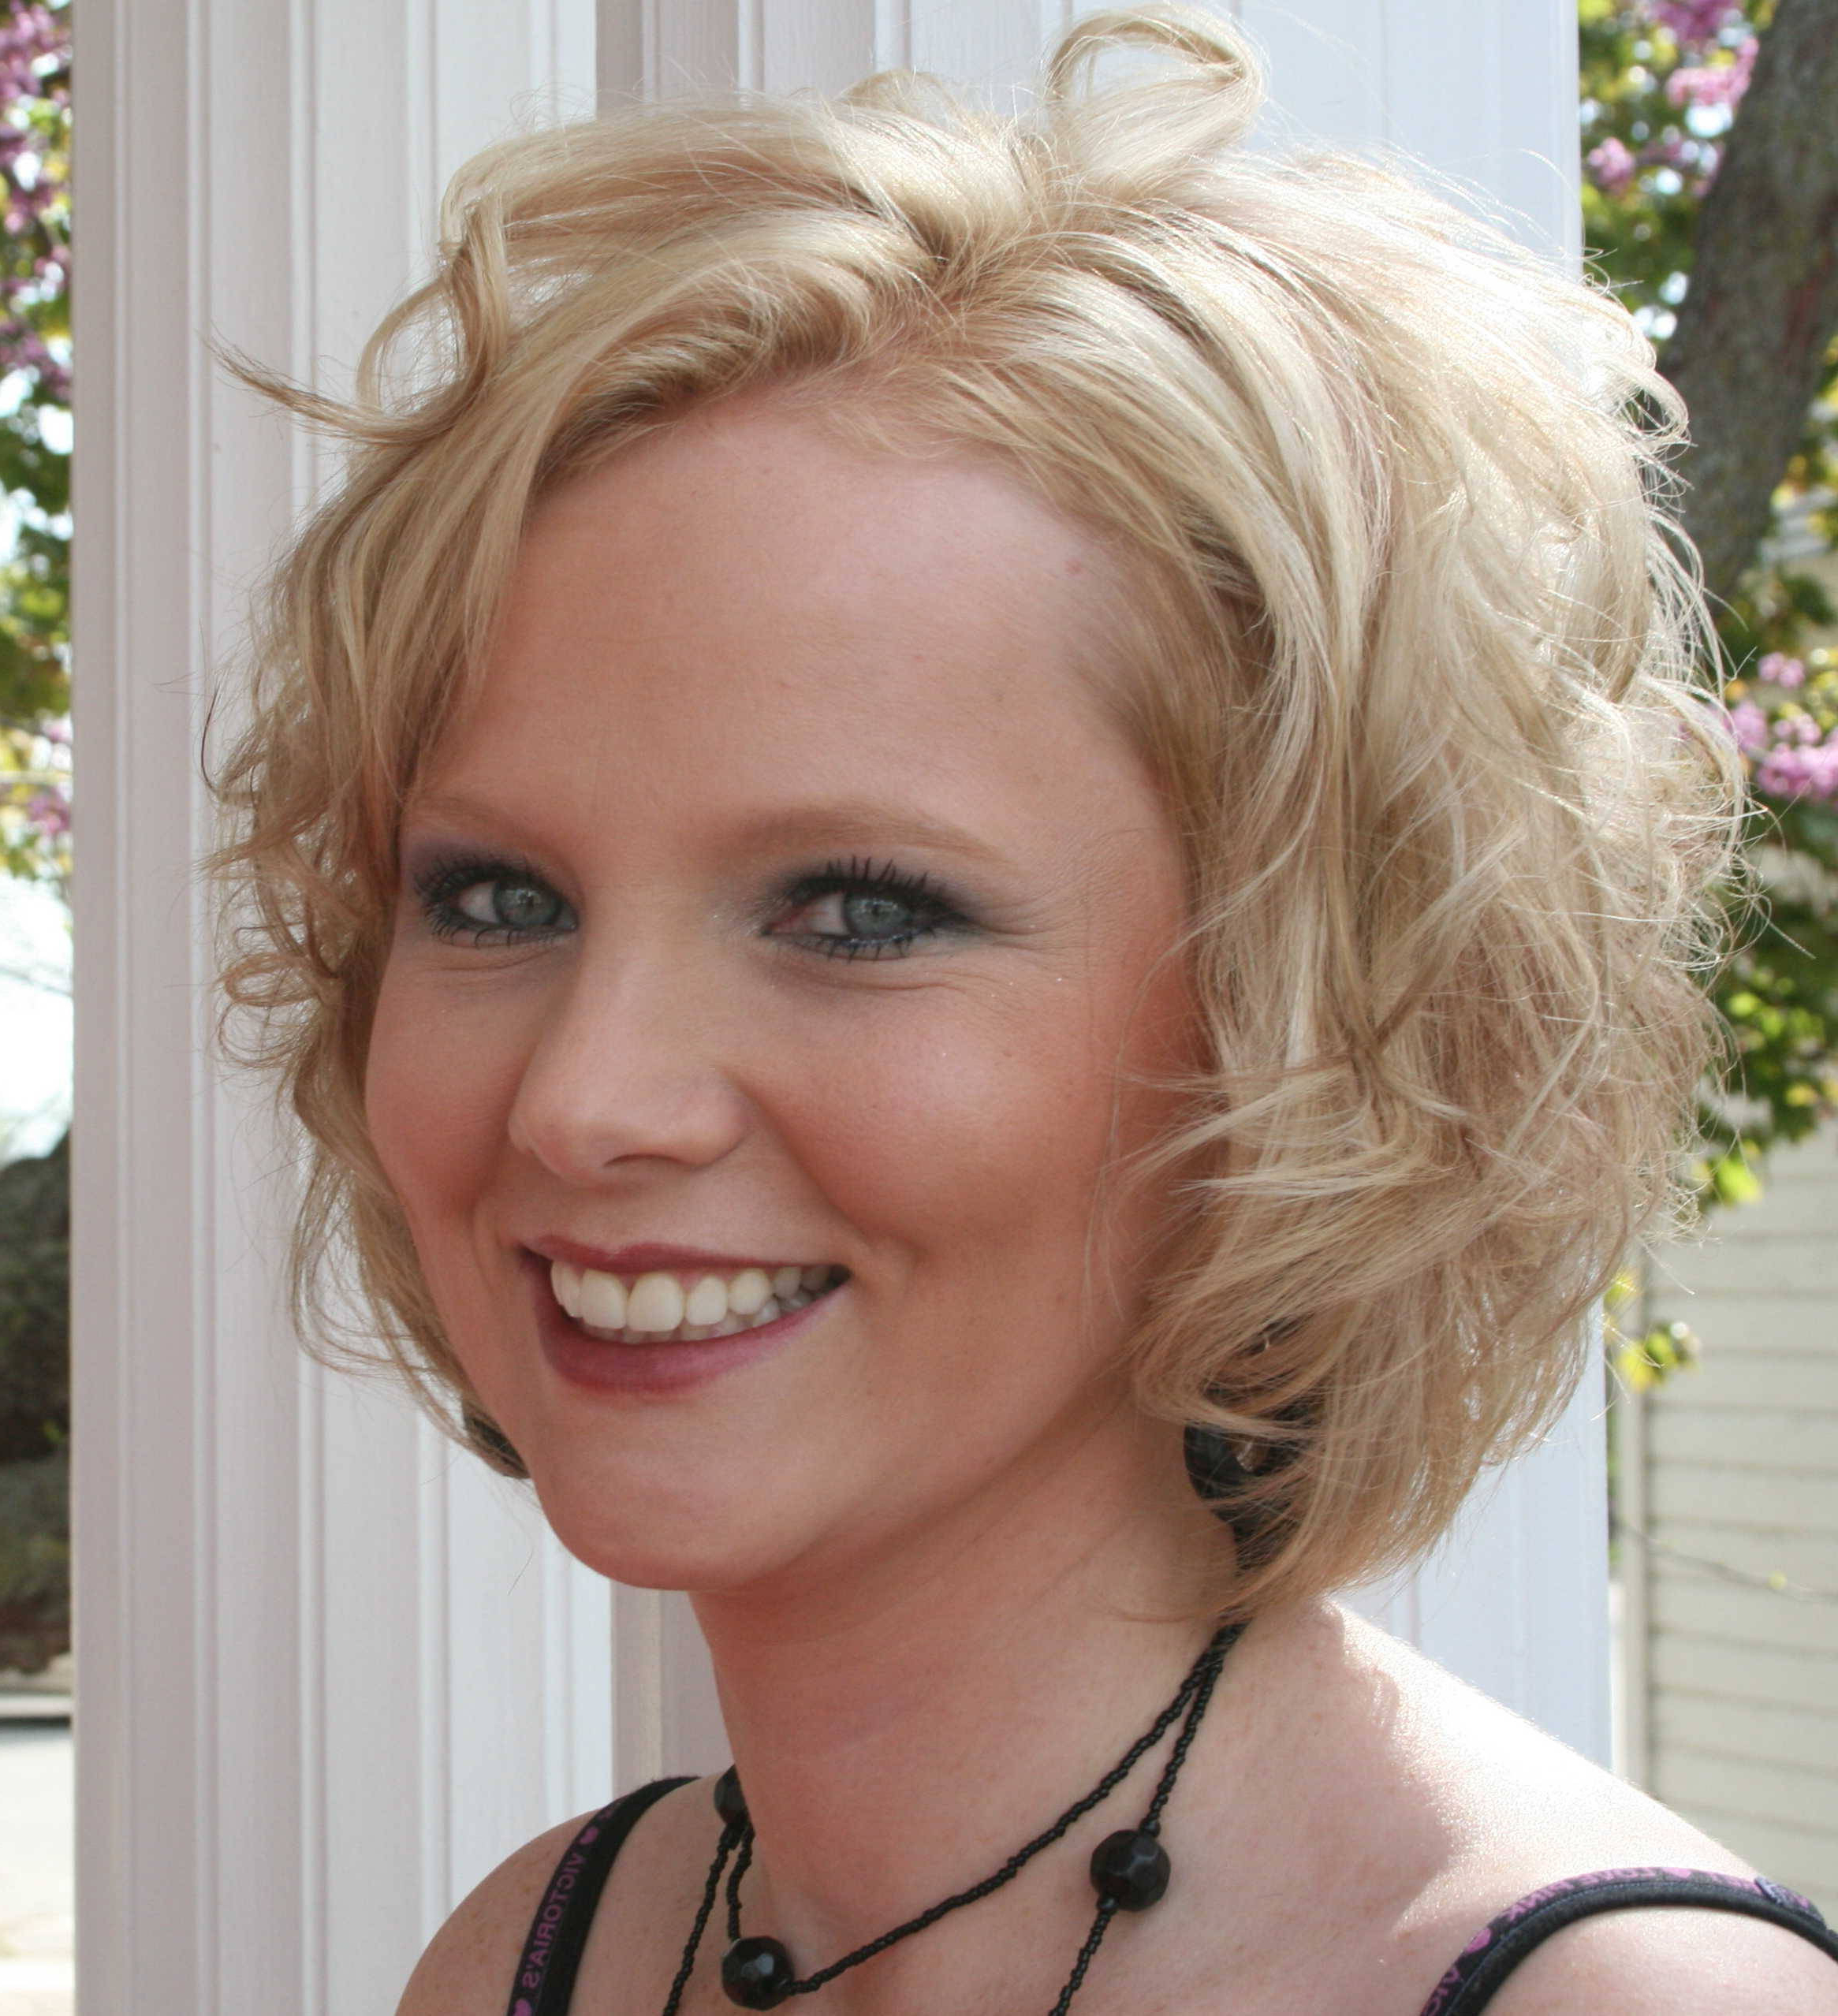 Short Hairstyles For Fine Curly Hair 2017 Image New 42 Easy Curly Pertaining To Short Hairstyles For Fine Curly Hair (View 19 of 25)